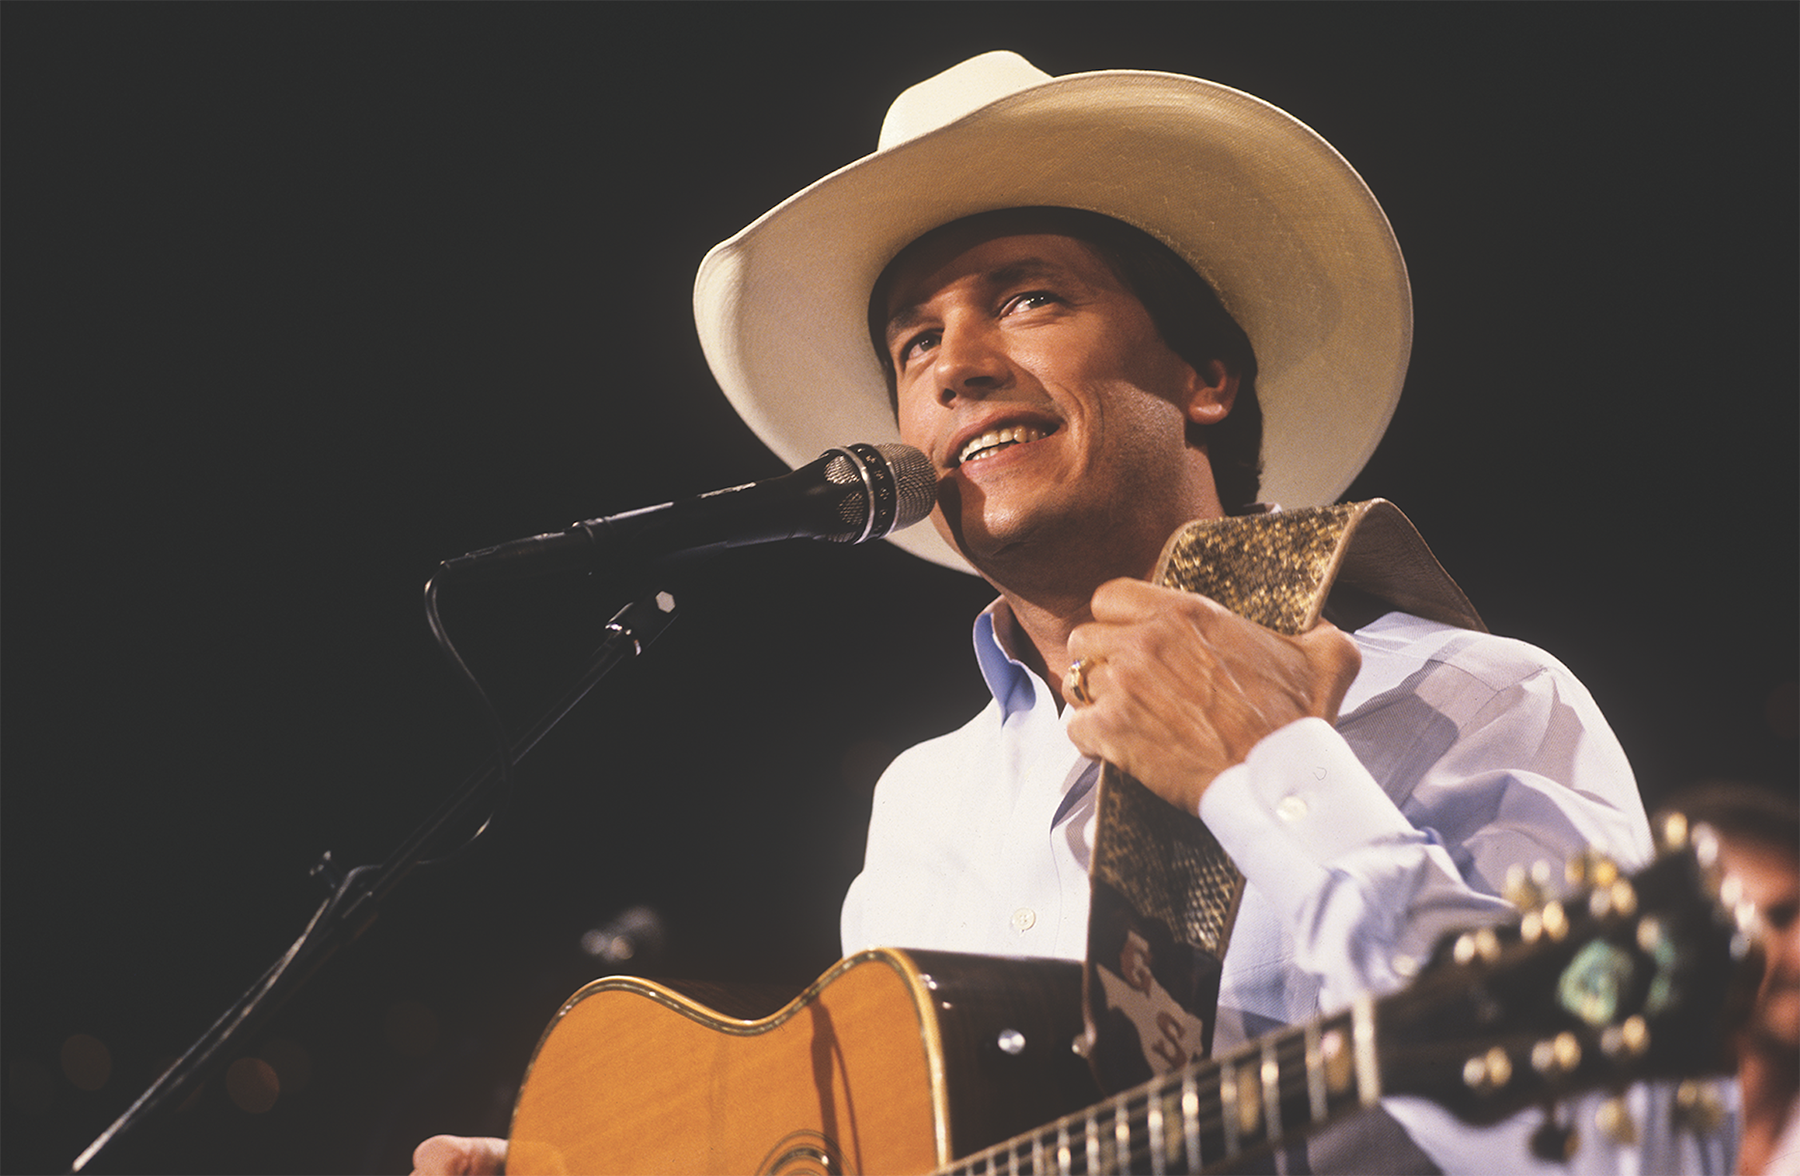 'Austin City Limits' Country Performances Compiled for New DVD Set